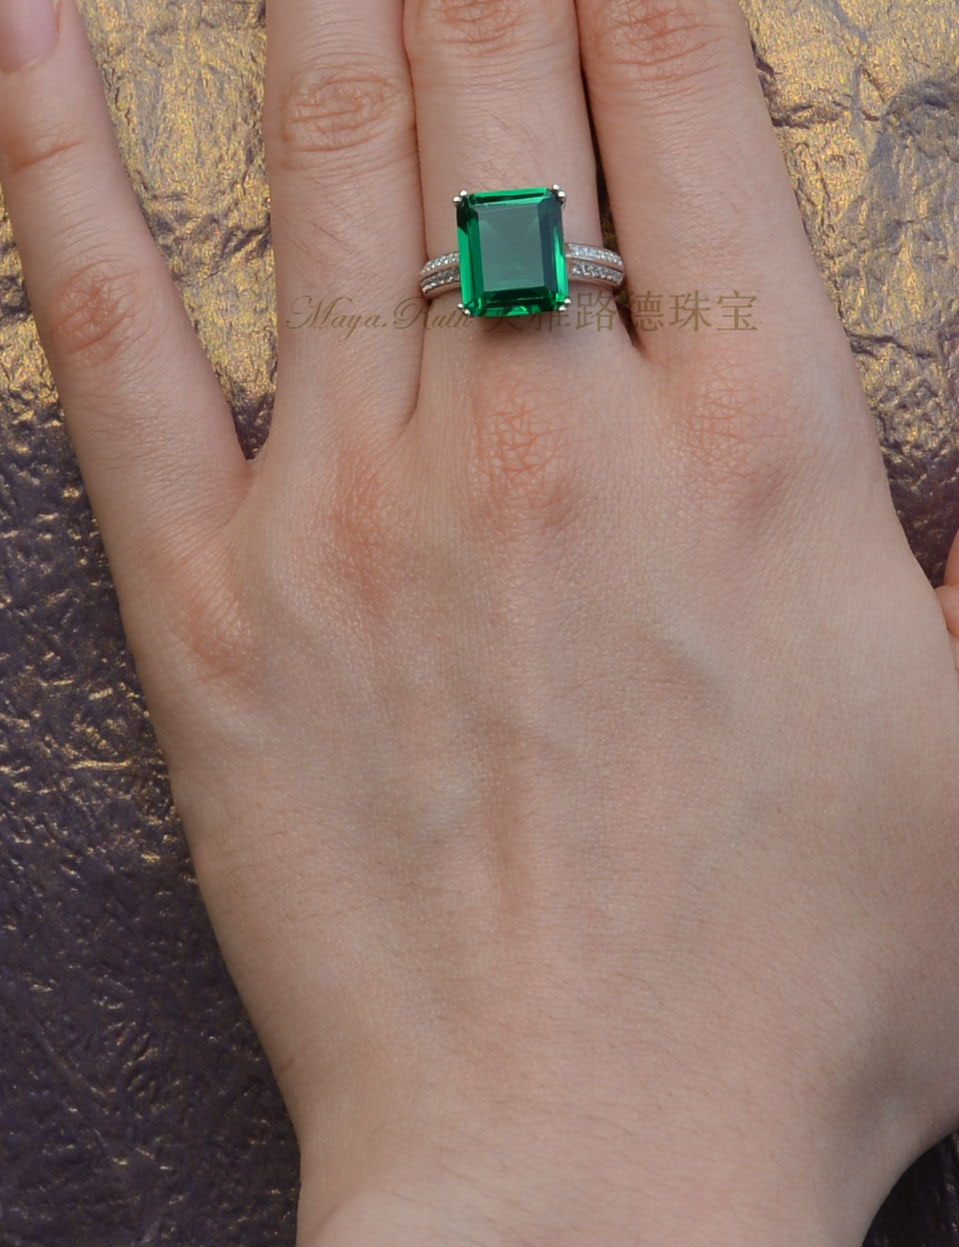 emerald rings differences between the real and synthetic. Synthetic Emerald Ring Square Shape 925 Sterling Silver White Gold Plated Luxury And Elegant Female Gift Excellent Workmanship-in Rings From Jewelry Differences Between The Real E